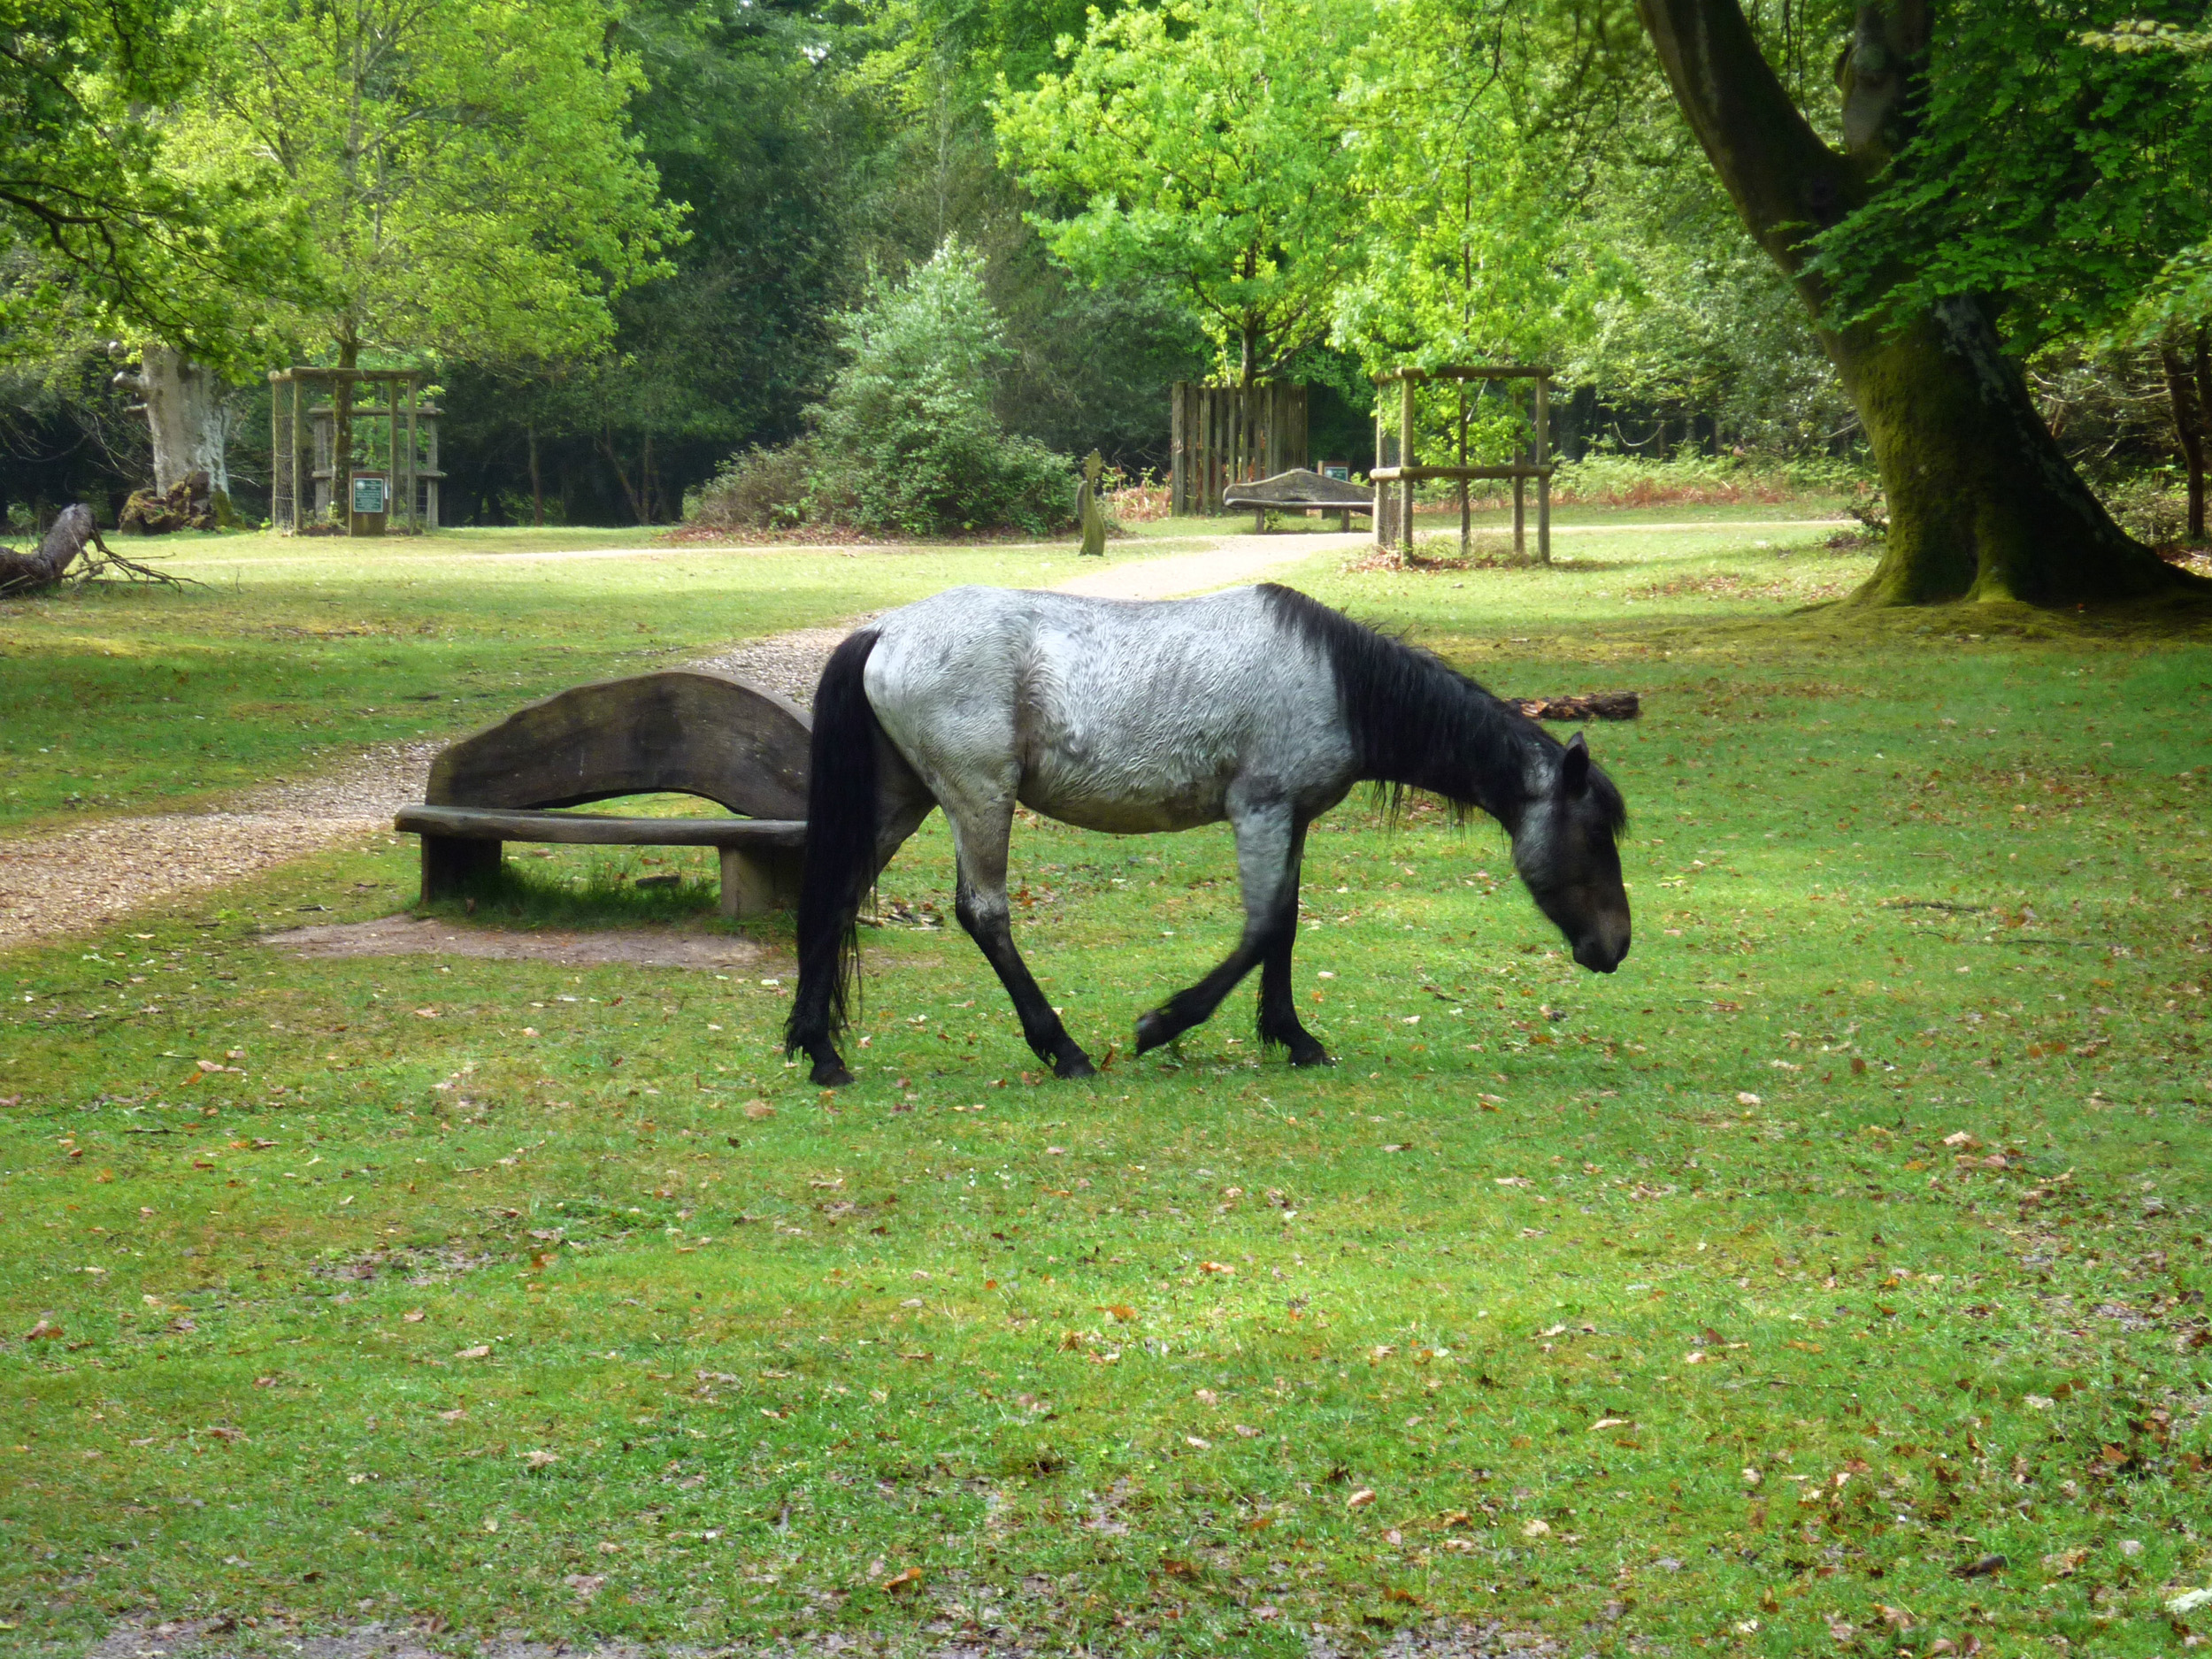 a wild pony roaming the new forest national park lands